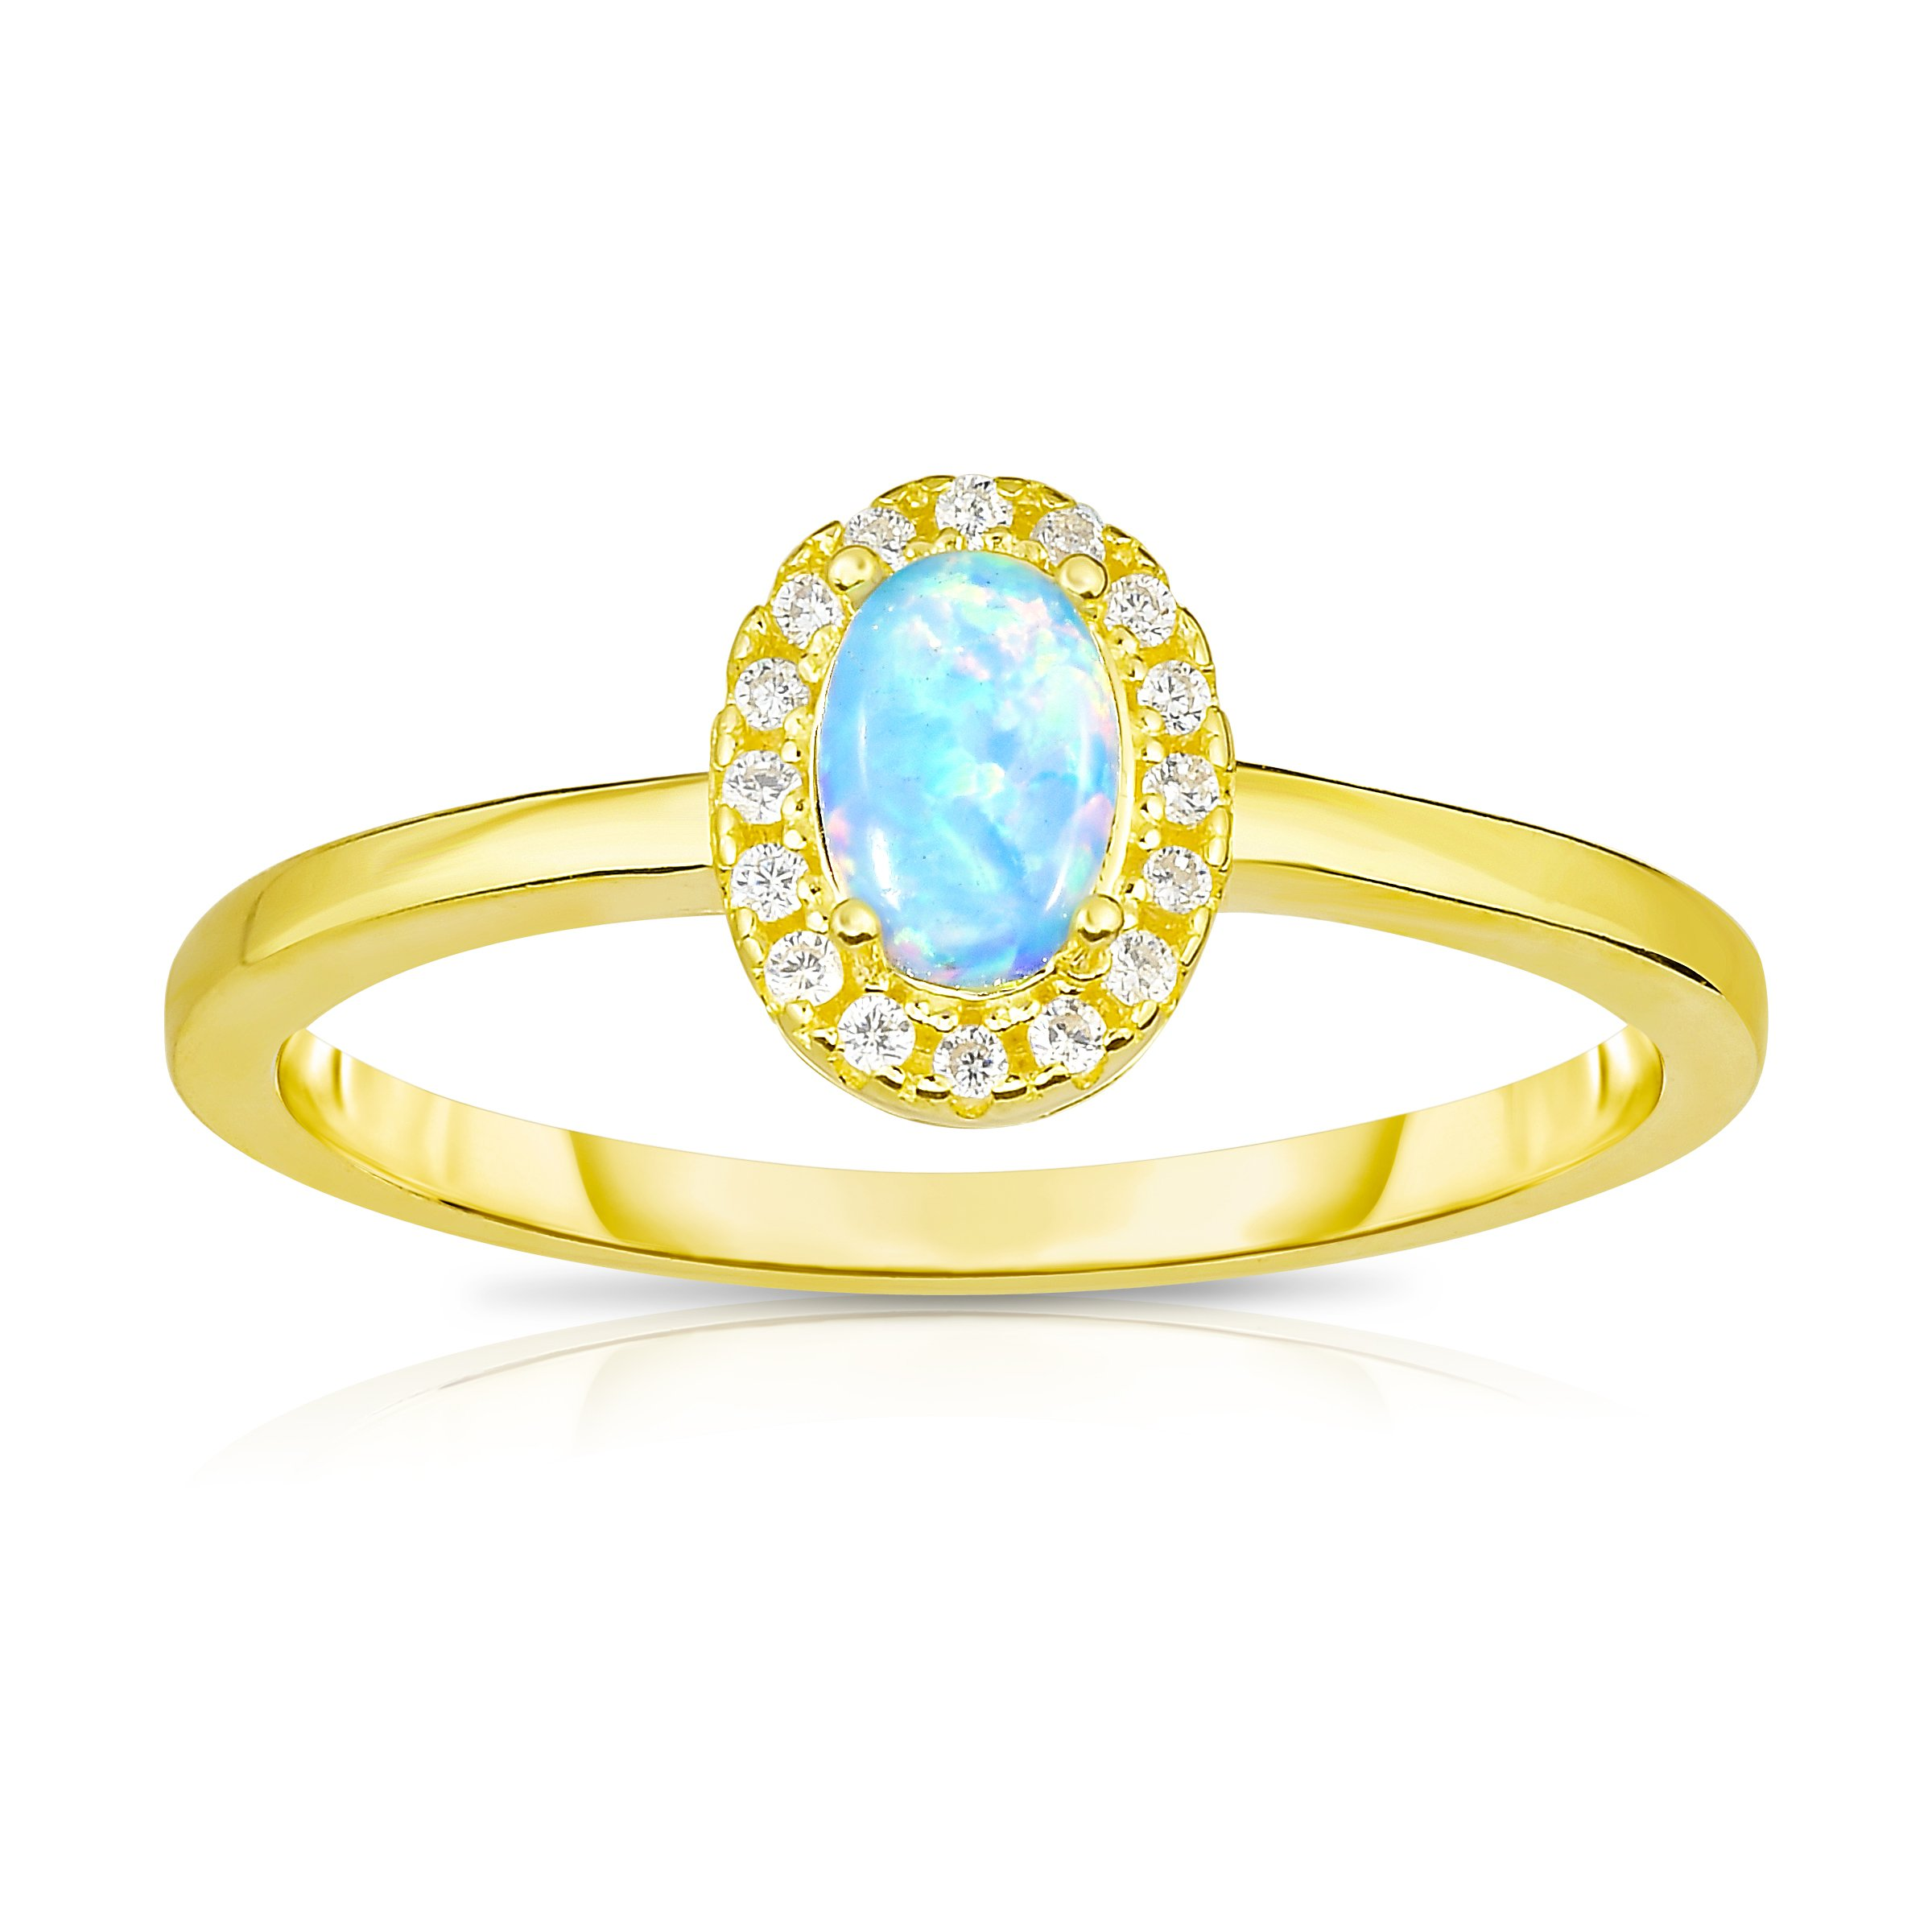 Unique Royal Jewelry 14K Yellow Gold Plated Sterling Silver Synthetic Opal with White Cubic Zirconia Halo Jacket Princess Diana Designer Ring. (8)